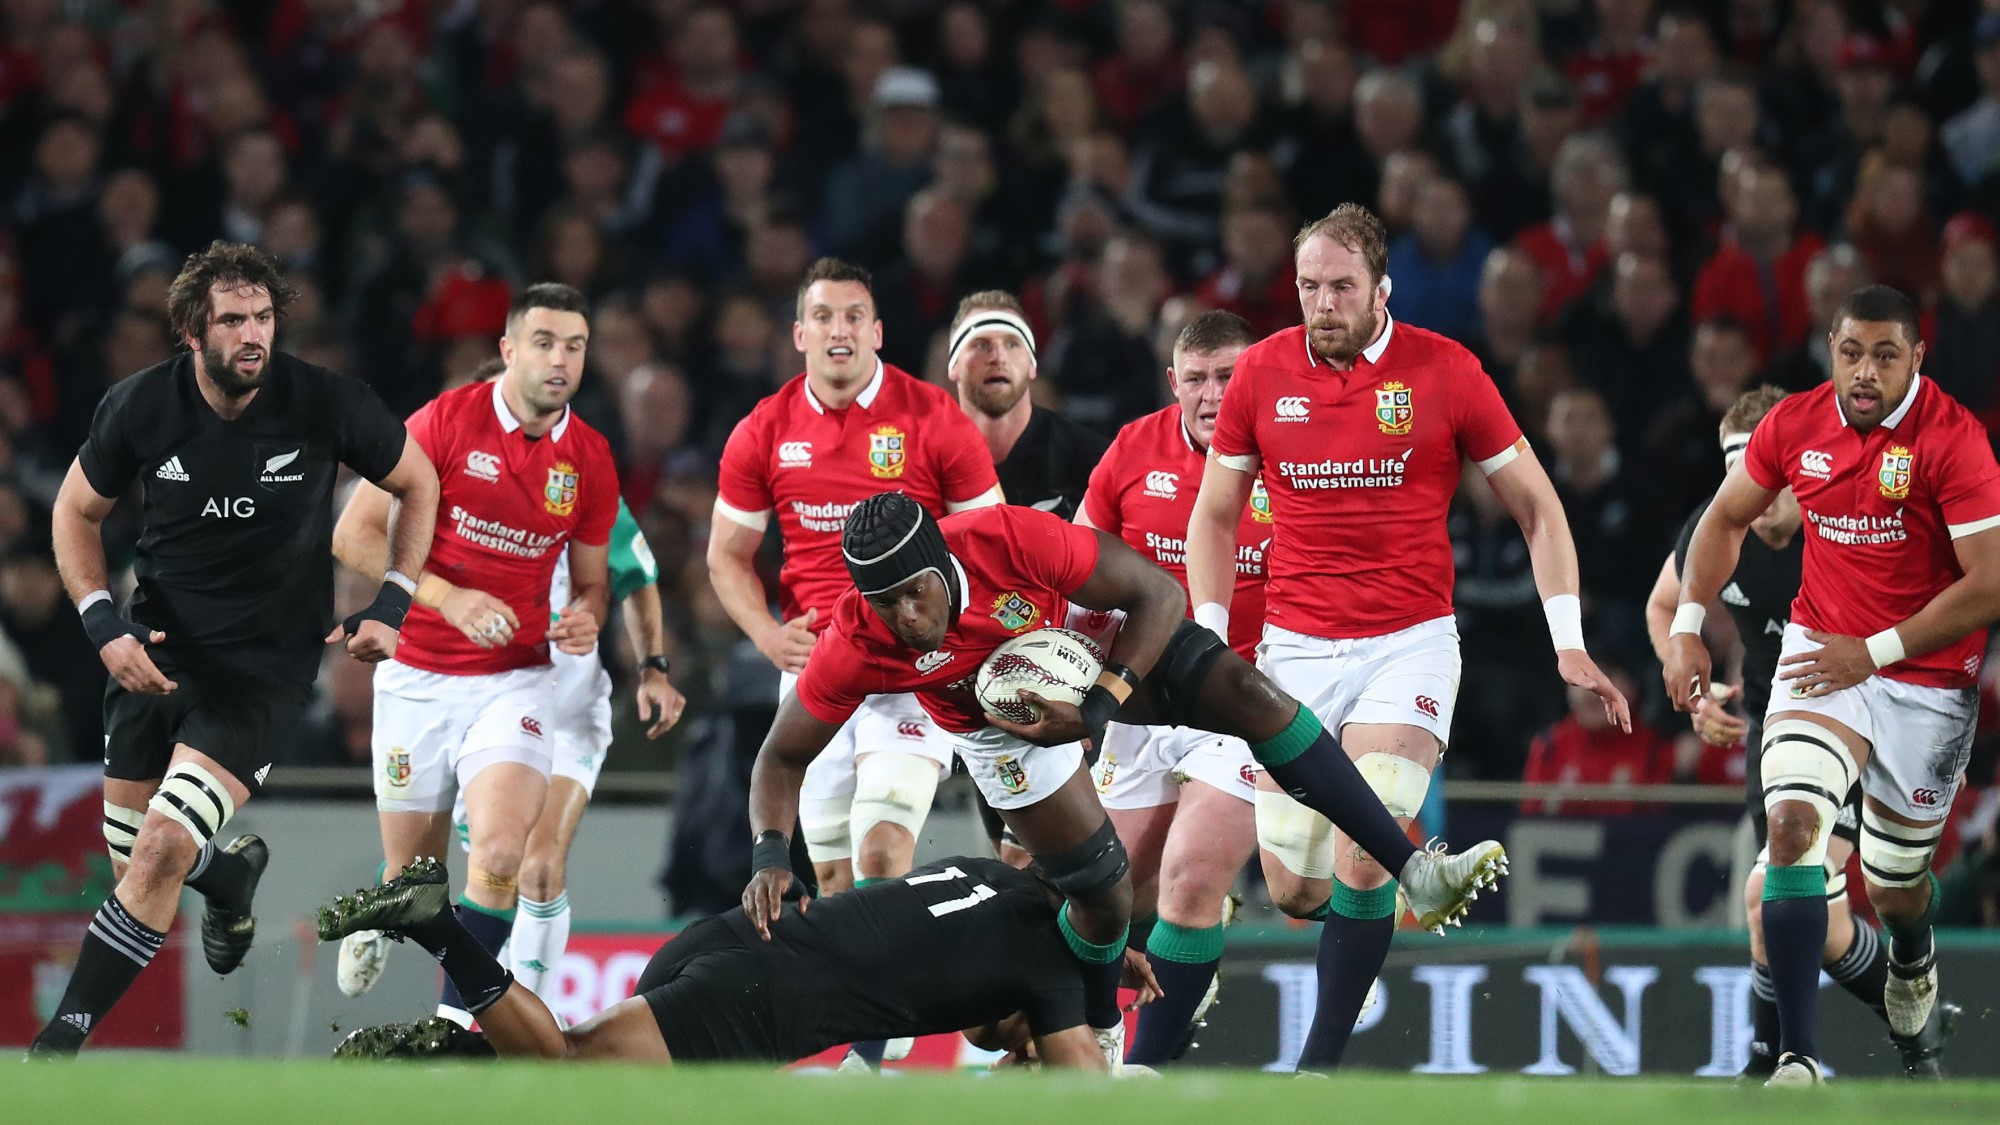 Home Nations look to gain momentum in Round Two